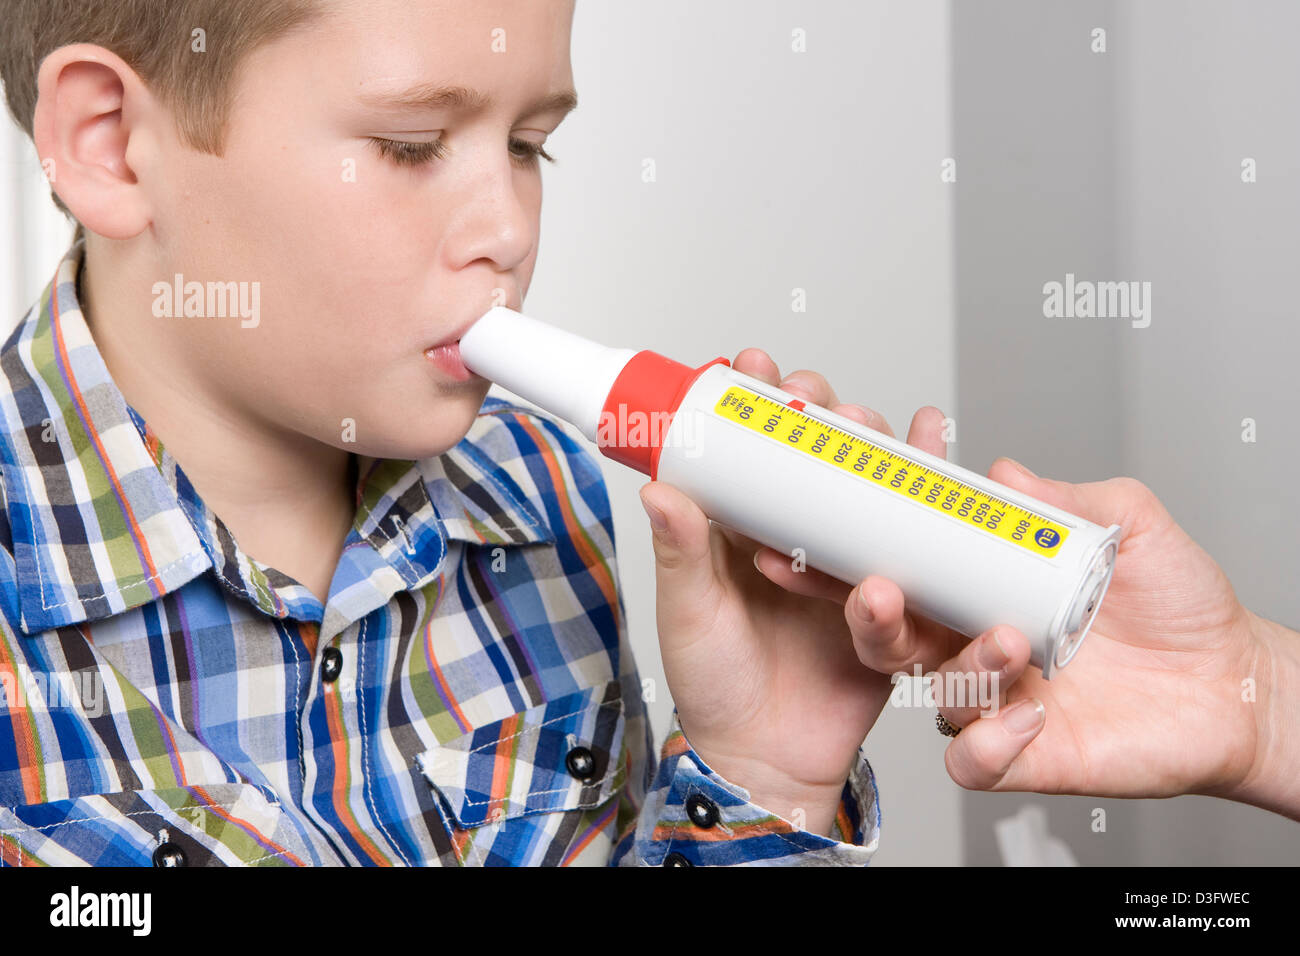 A young female nurse administering a peak flow meter to a young male child patient at a Doctor's Surgery. - Stock Image